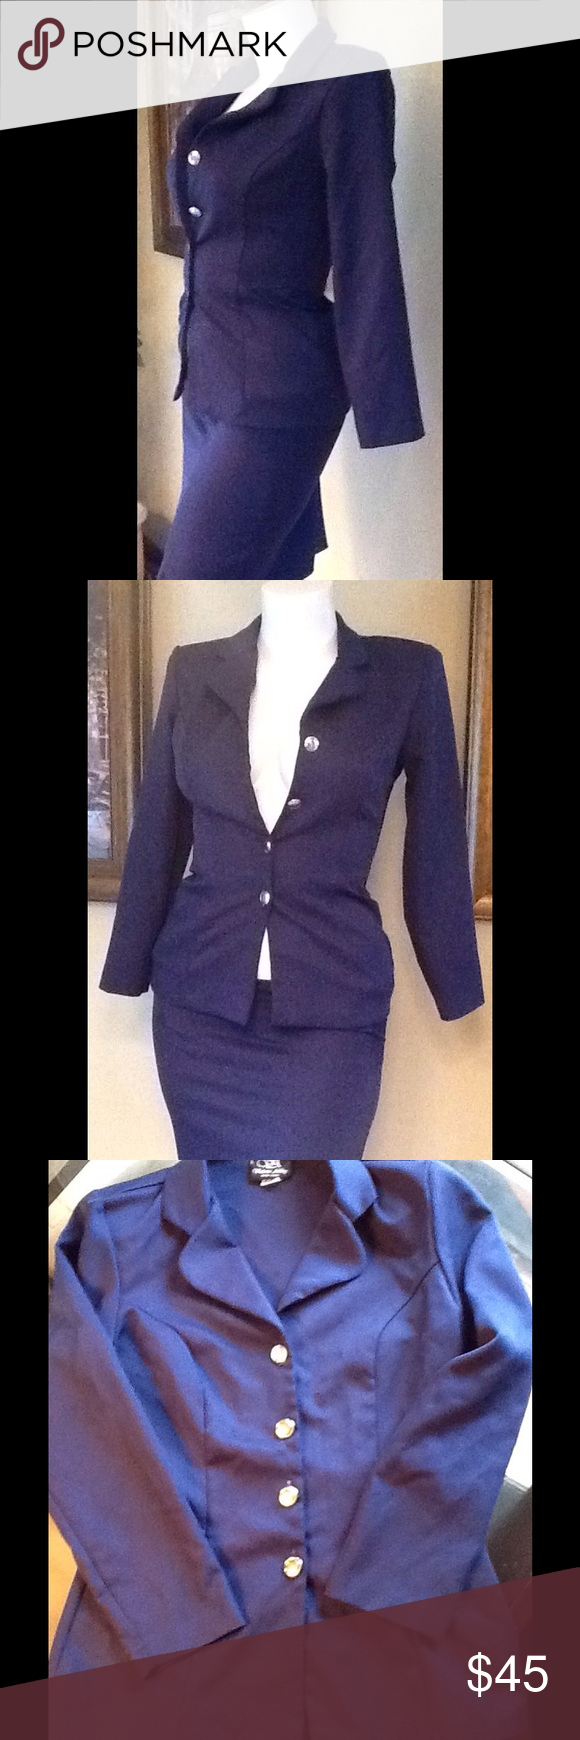 Pc navy blue ladies suit pc navy blue ladies suit comes with